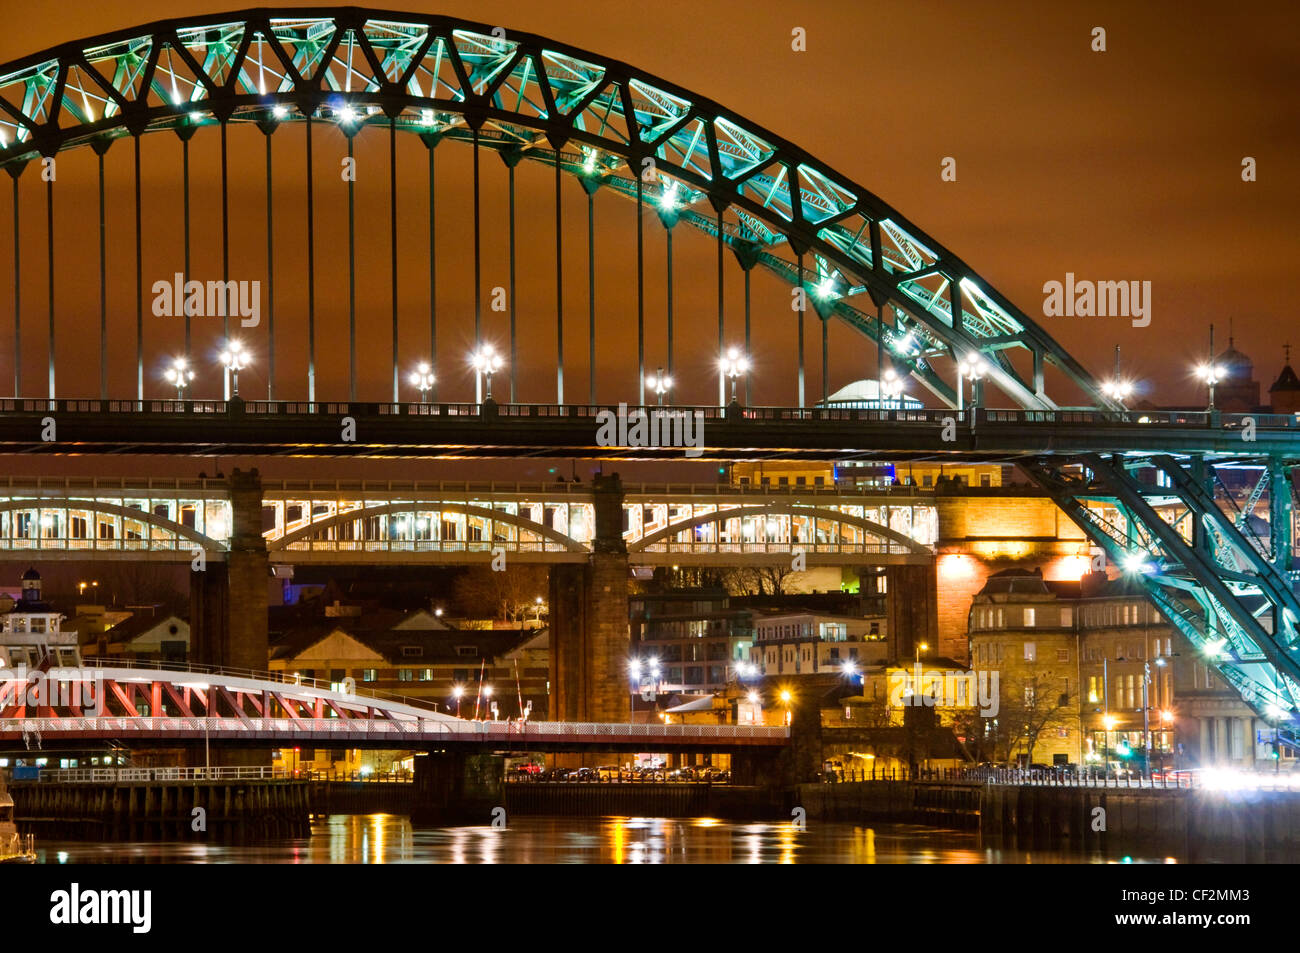 Evening view of the famous Tyne Bridges spanning the River Tyne to link Newcastle upon Tyne on the northern side - Stock Image